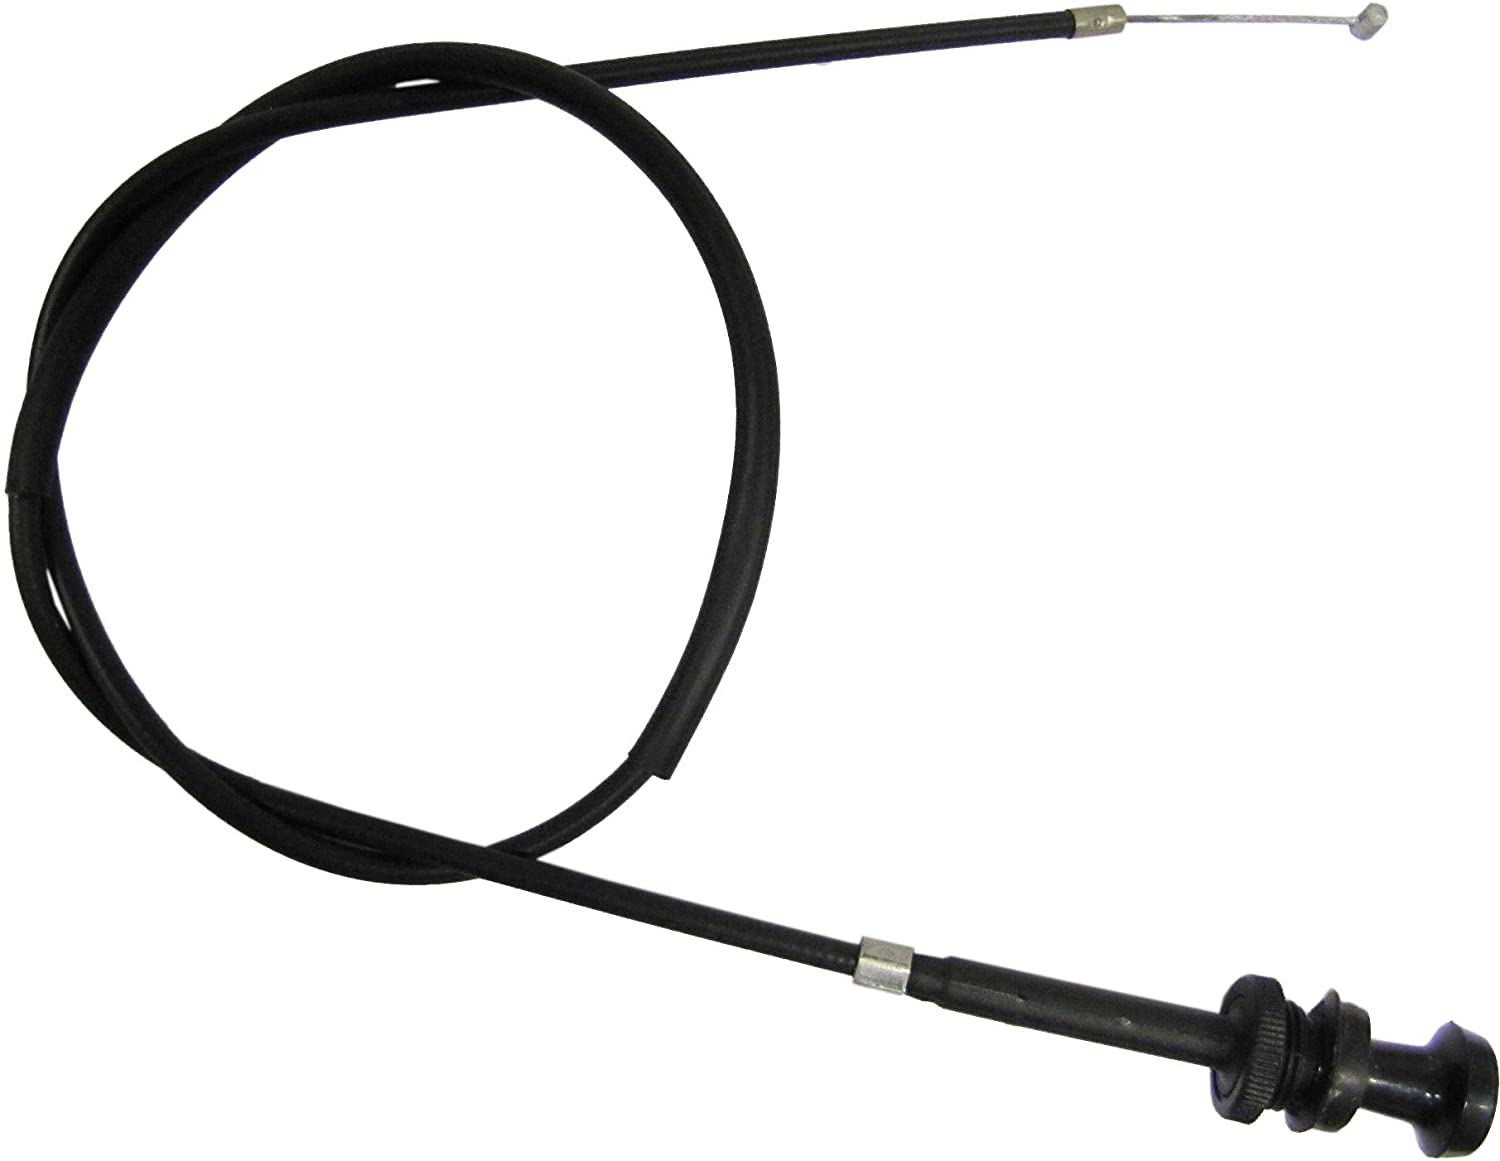 Suzuki GS 650 Choke Cable 1981-1983 Hi Level